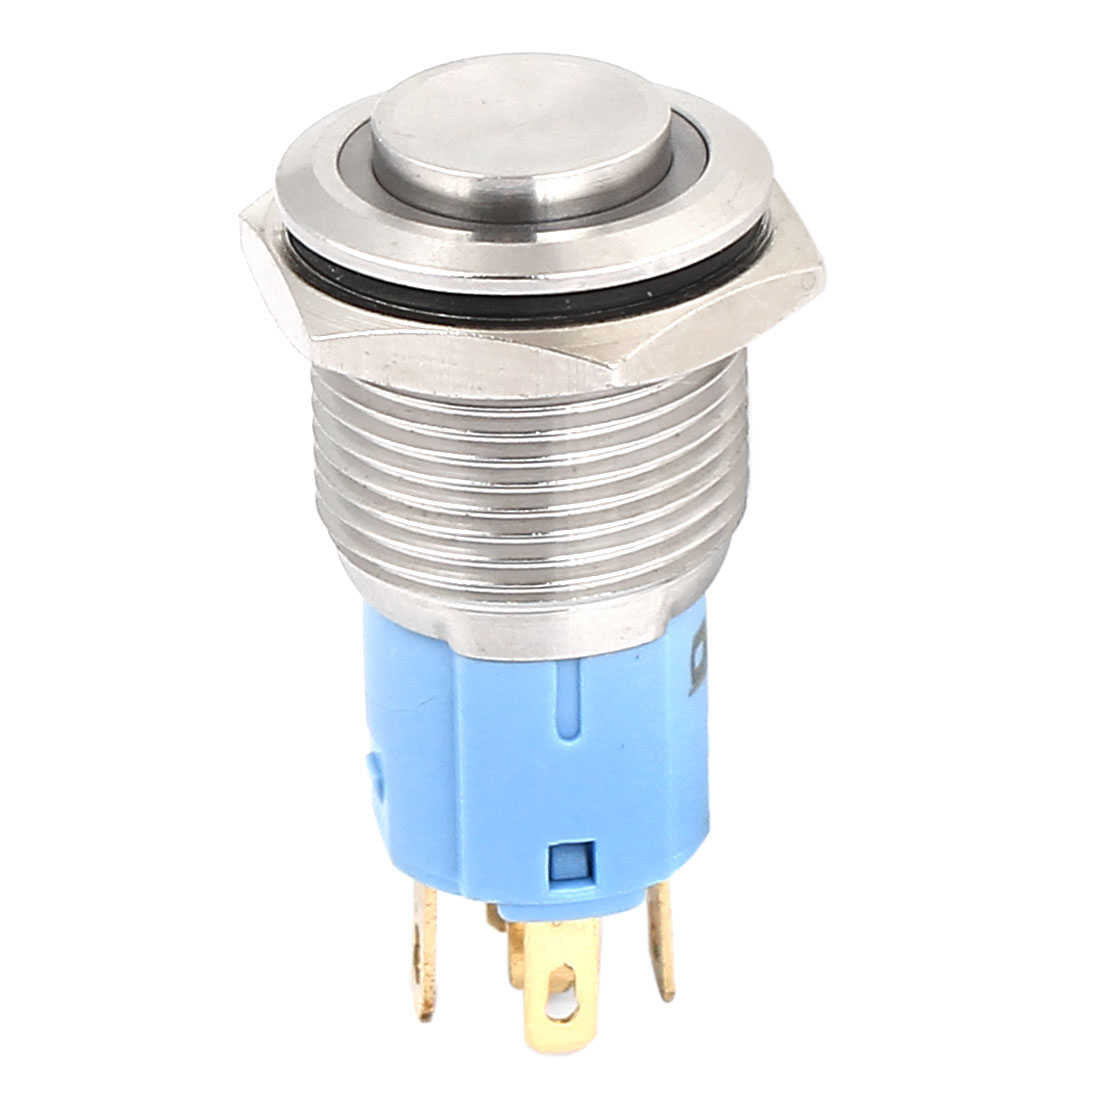 12V 16mm Dia White LED Angle Eyes Momentary Metal Pushbutton Switch Raised Top